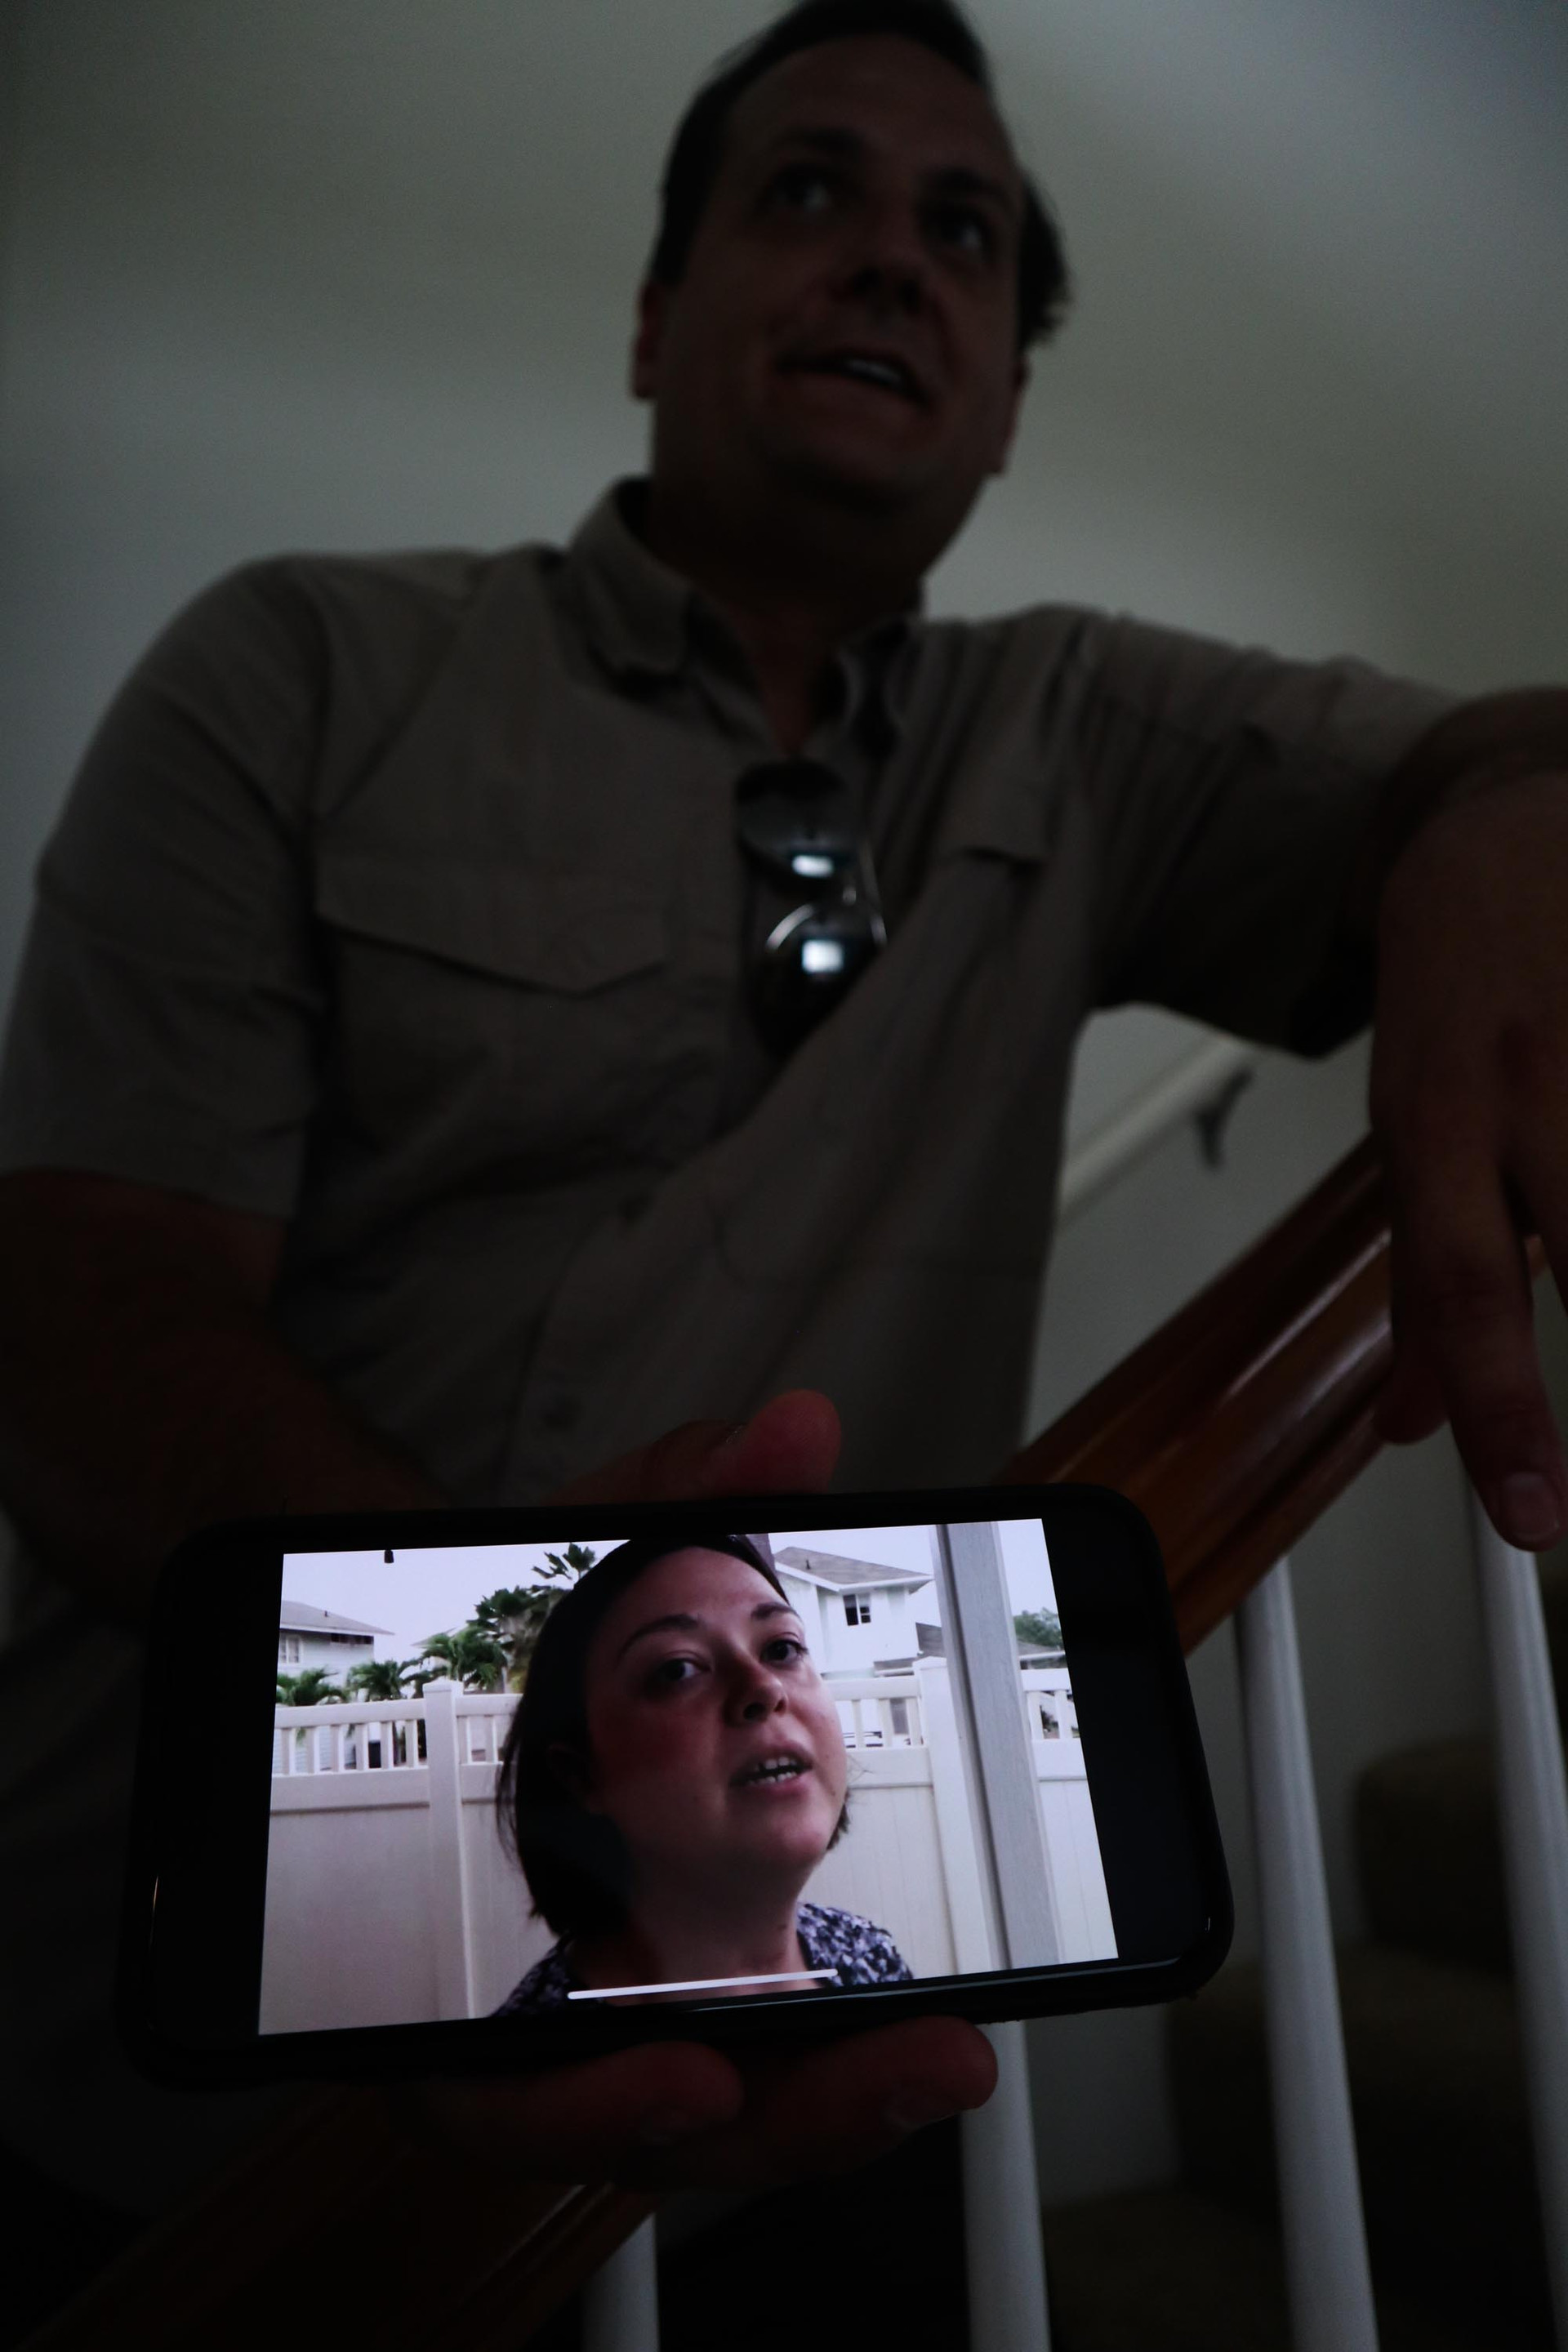 Stremel shows a picture of his ex-wife on the staircase in his home. A phone picture shows Strammel's ex-wife April carrying their son Calvin.